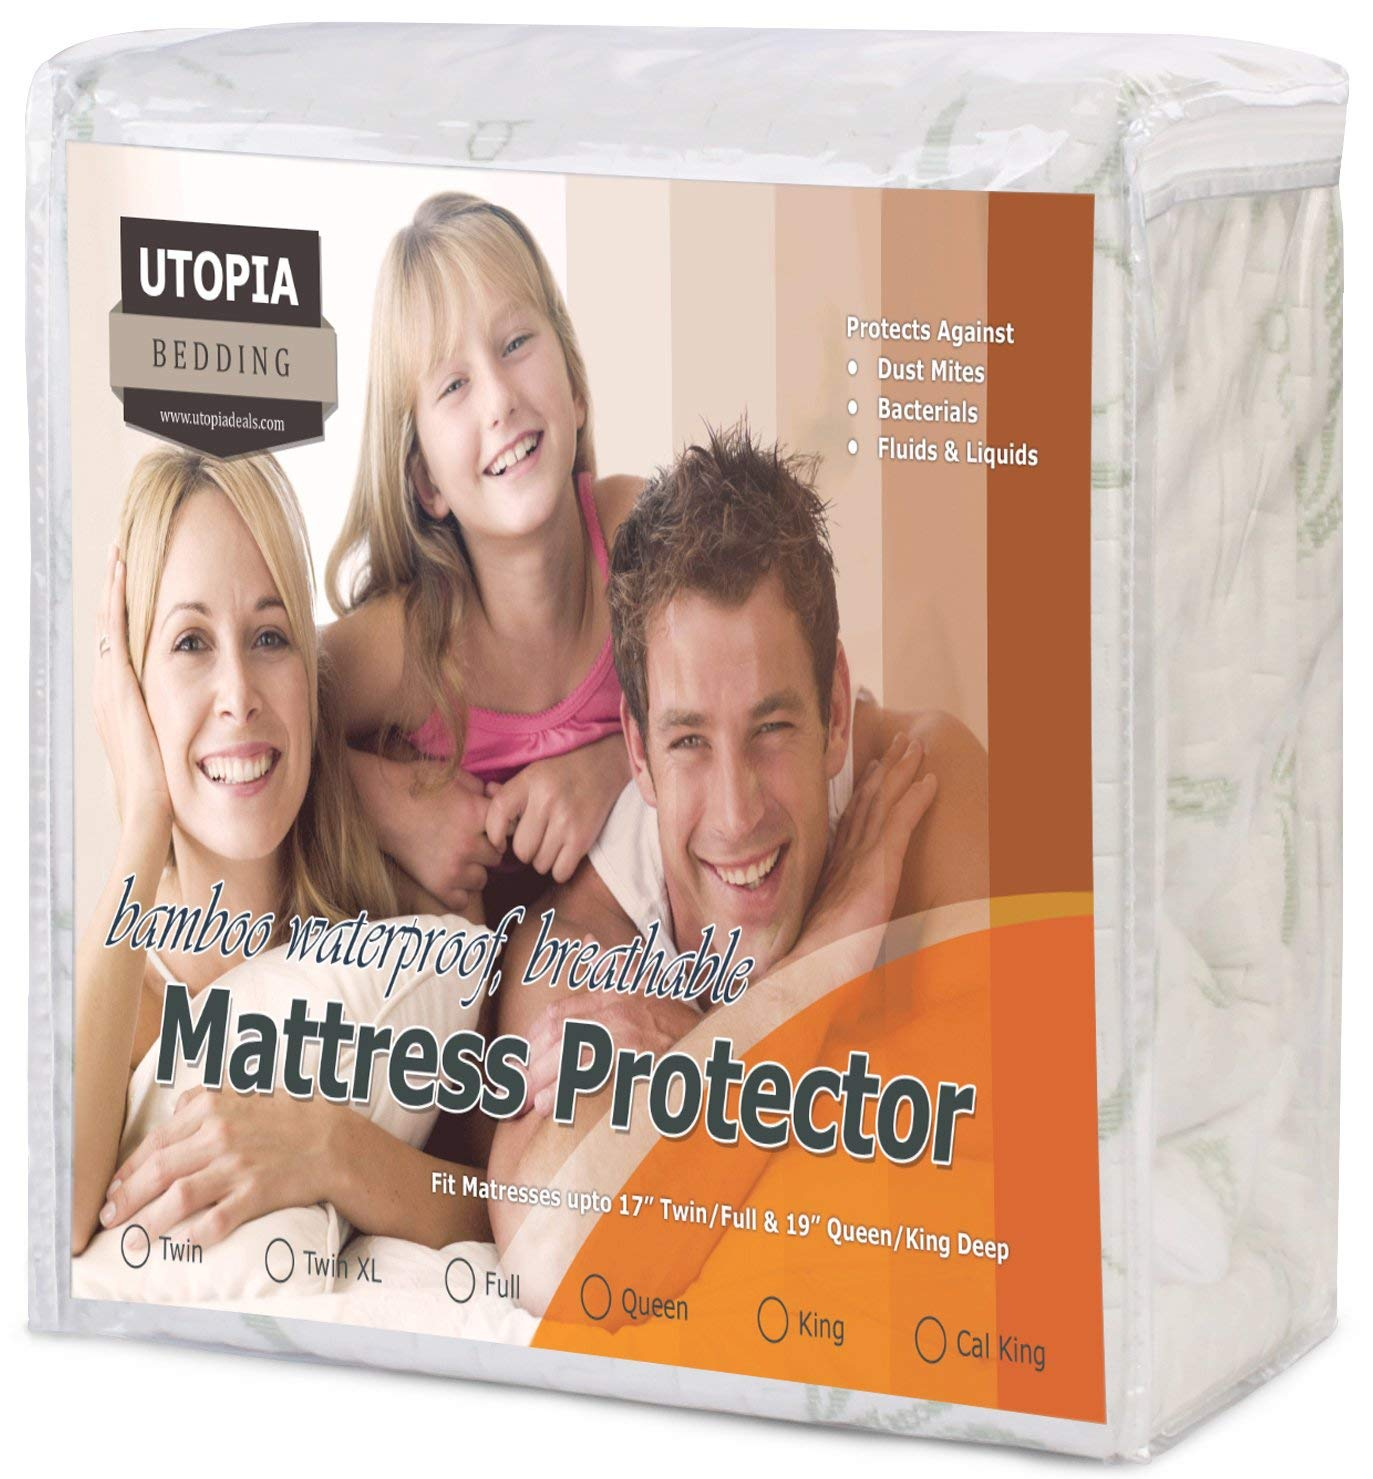 Utopia Bedding Best Bamboo Mattress Protectors Review by www.snoremagazine.com